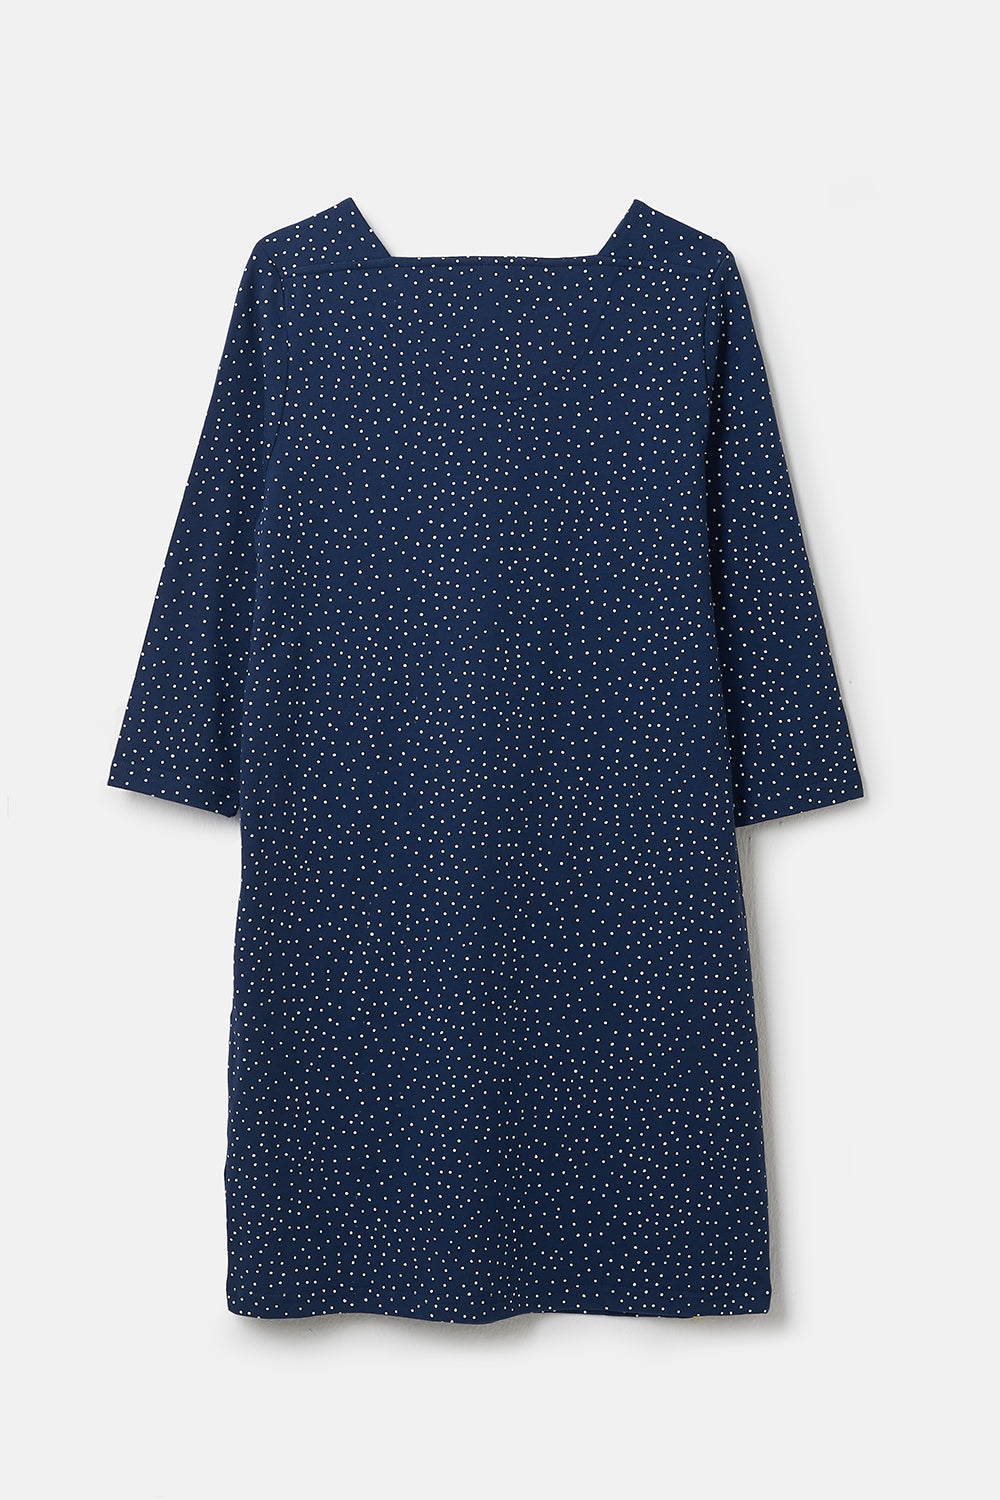 Annabelle Dress - Midnight Dot